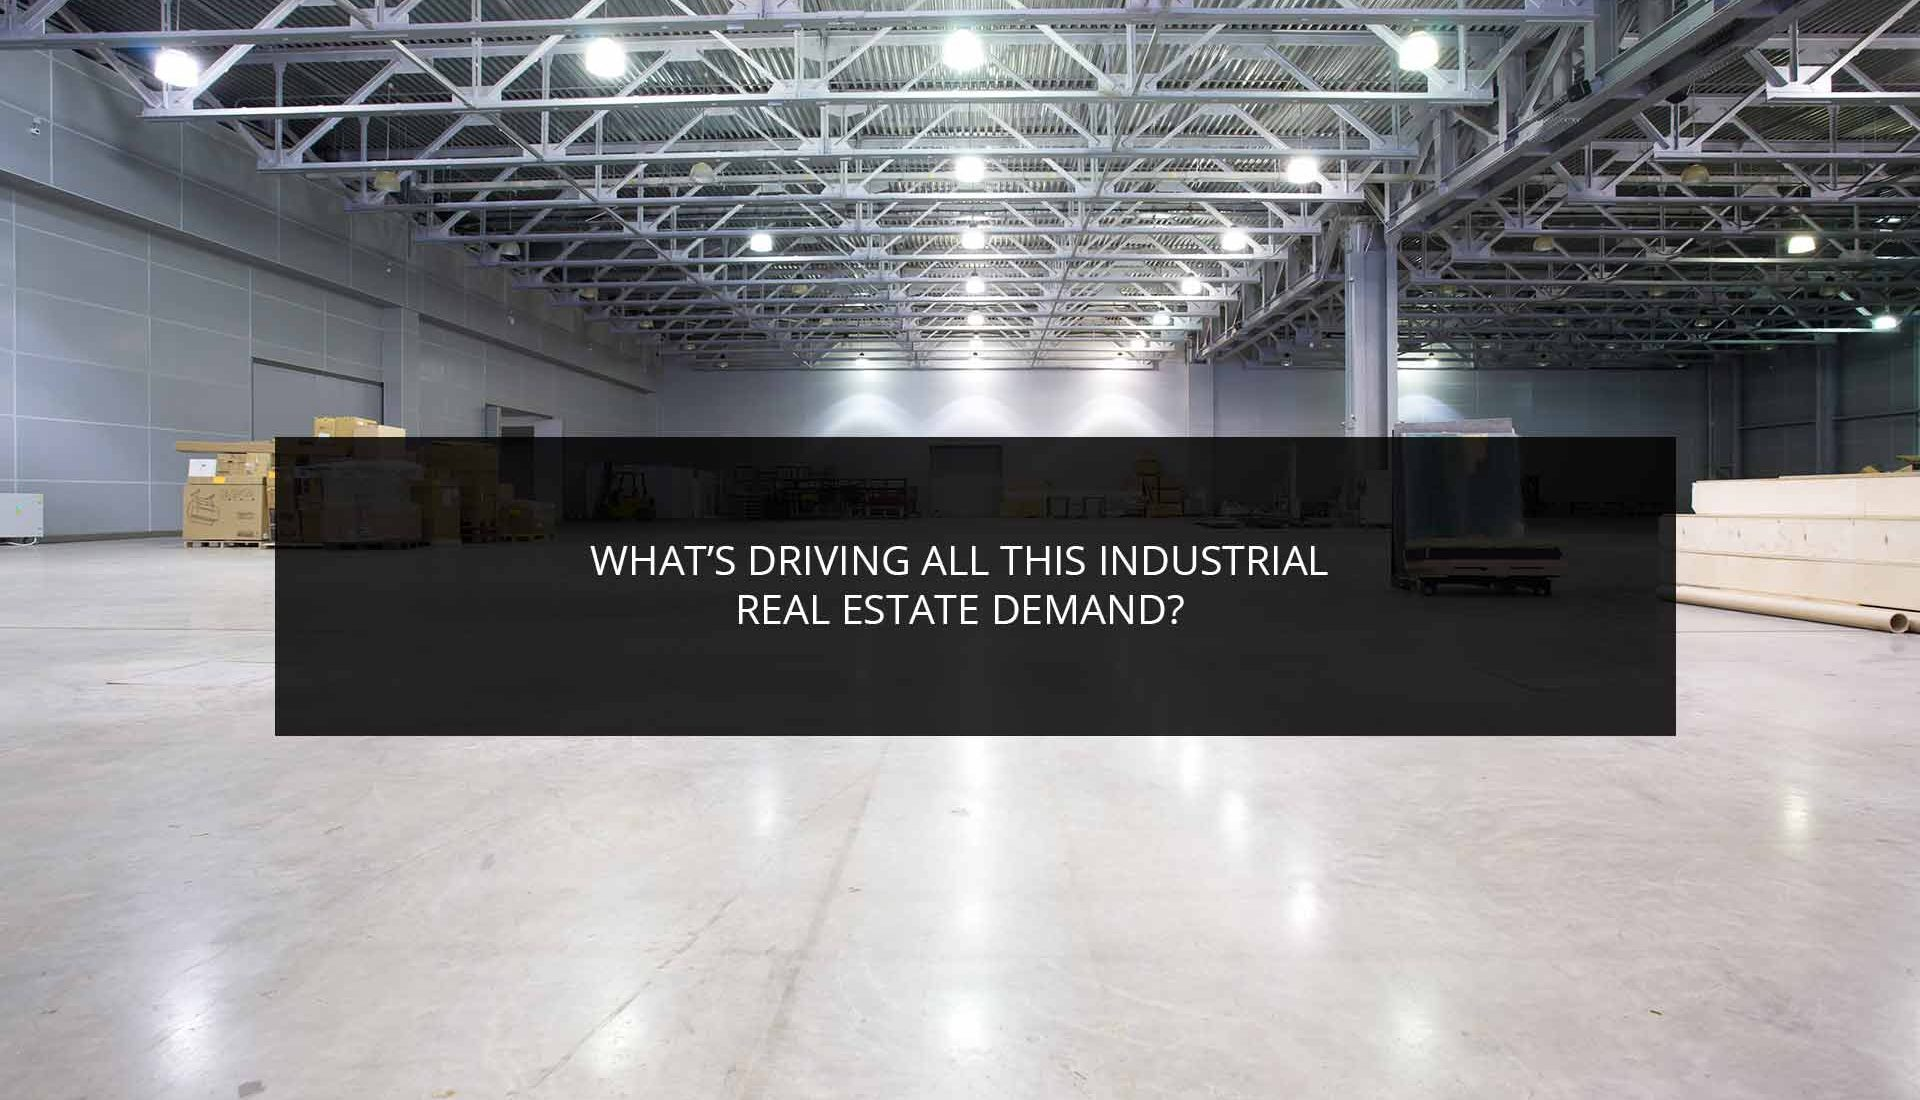 What's Driving All This Industrial Real Estate Demand?